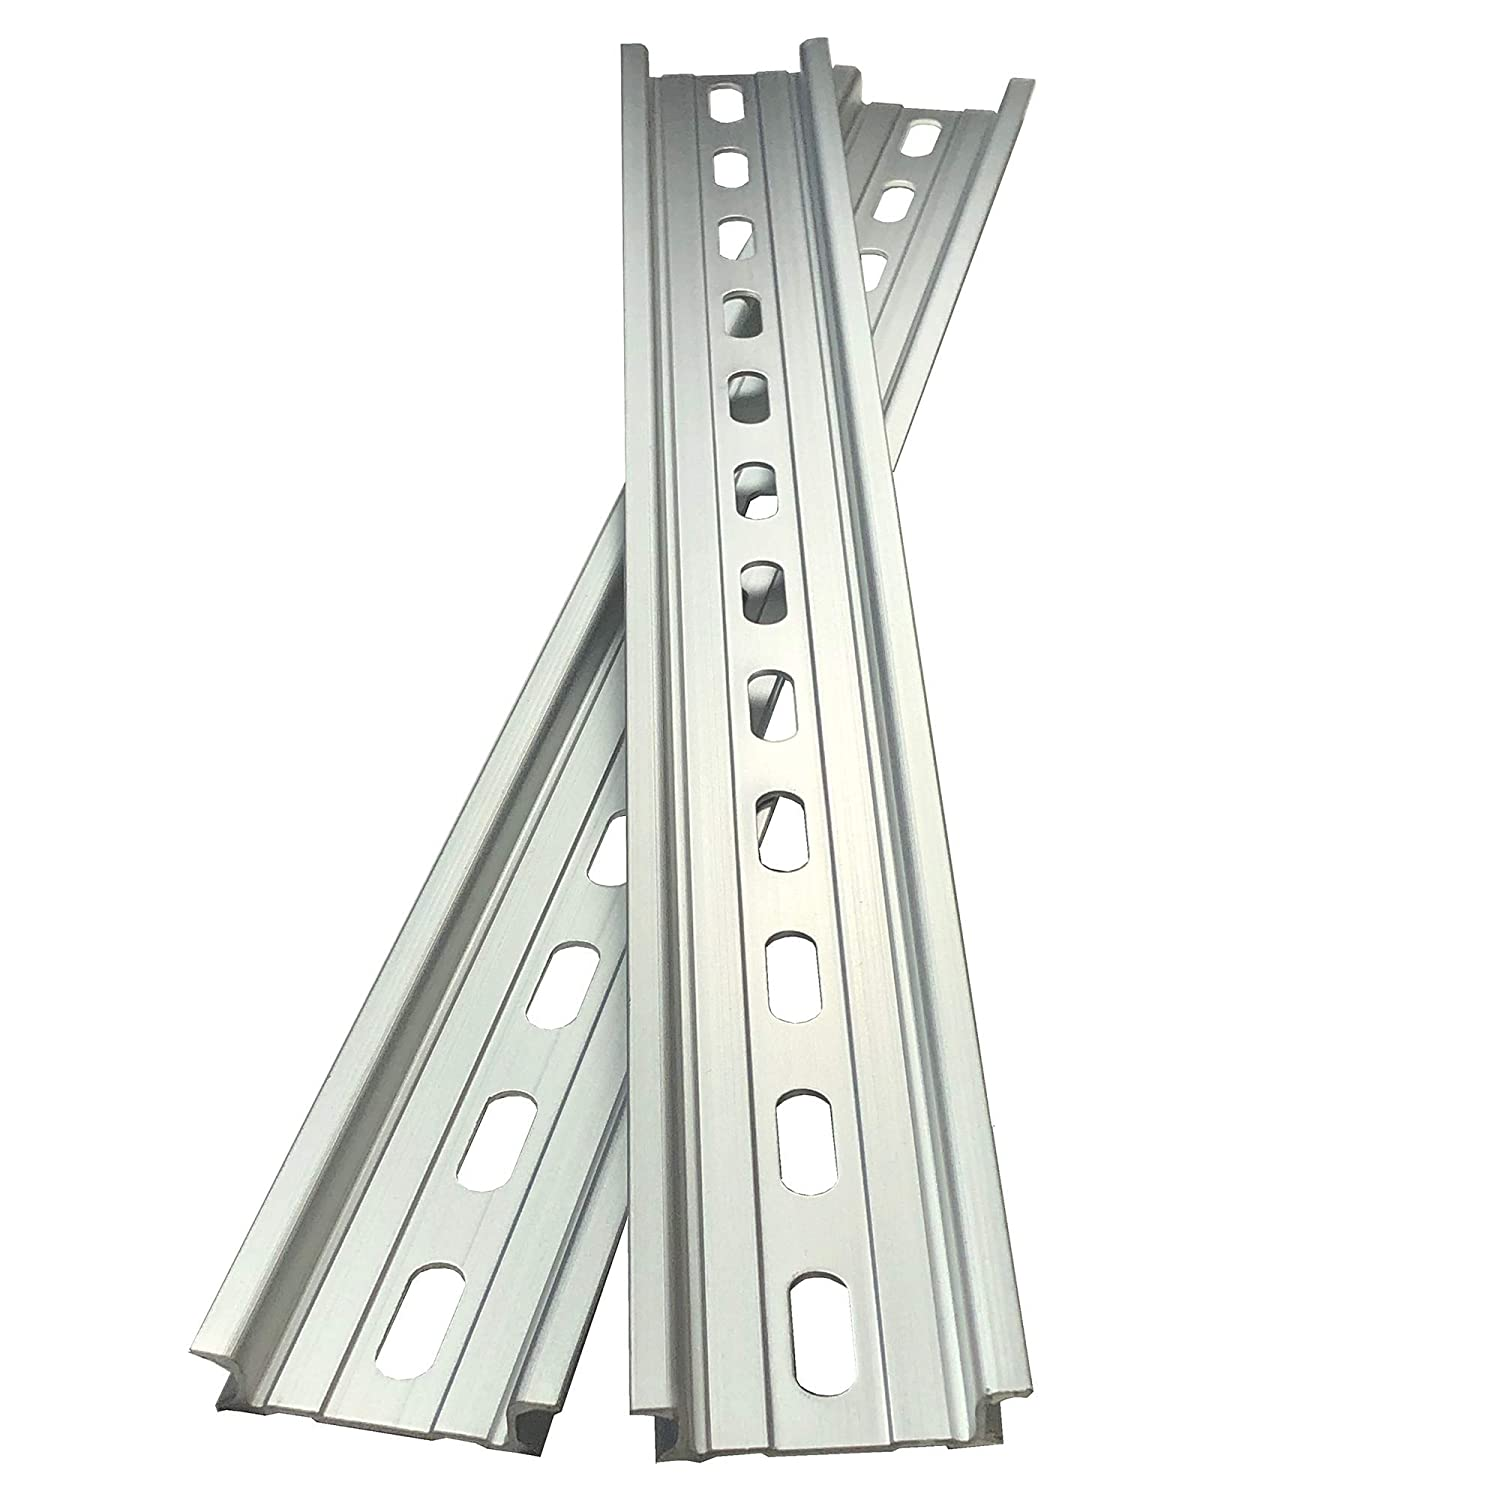 2 Pieces DIN Rail Slotted Aluminum RoHS 12